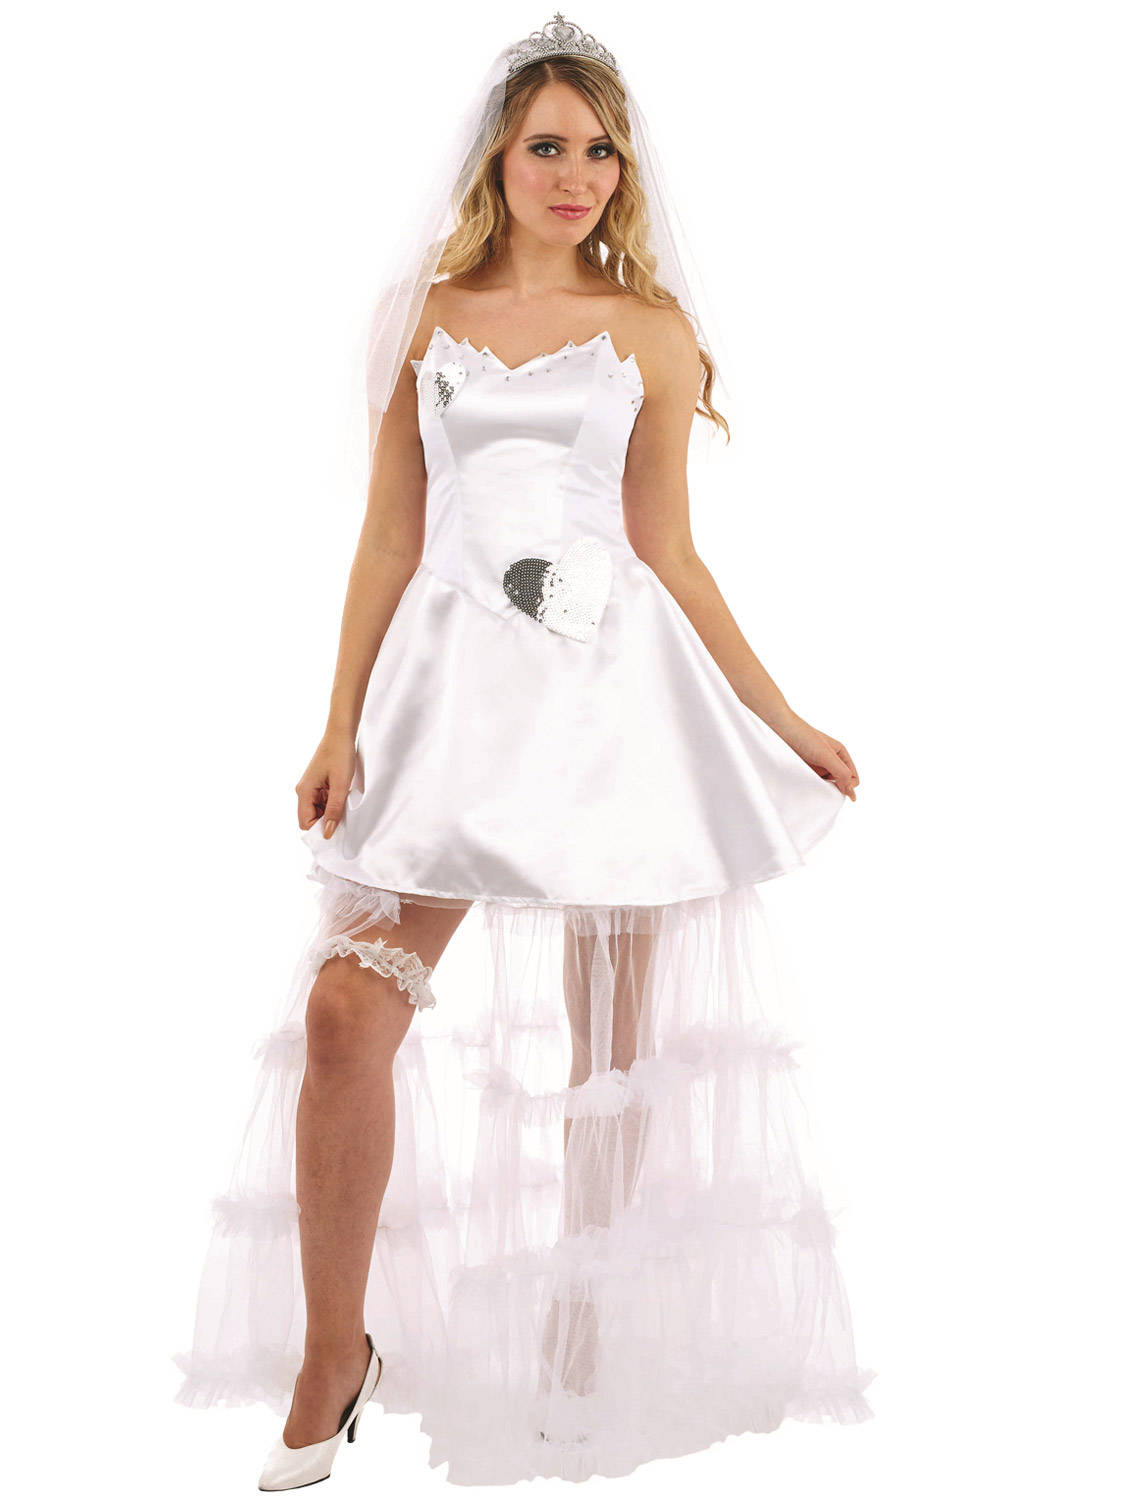 Ladies Bride Costume Adults Wedding Hen Night Fancy Dress Womens Party Outfit